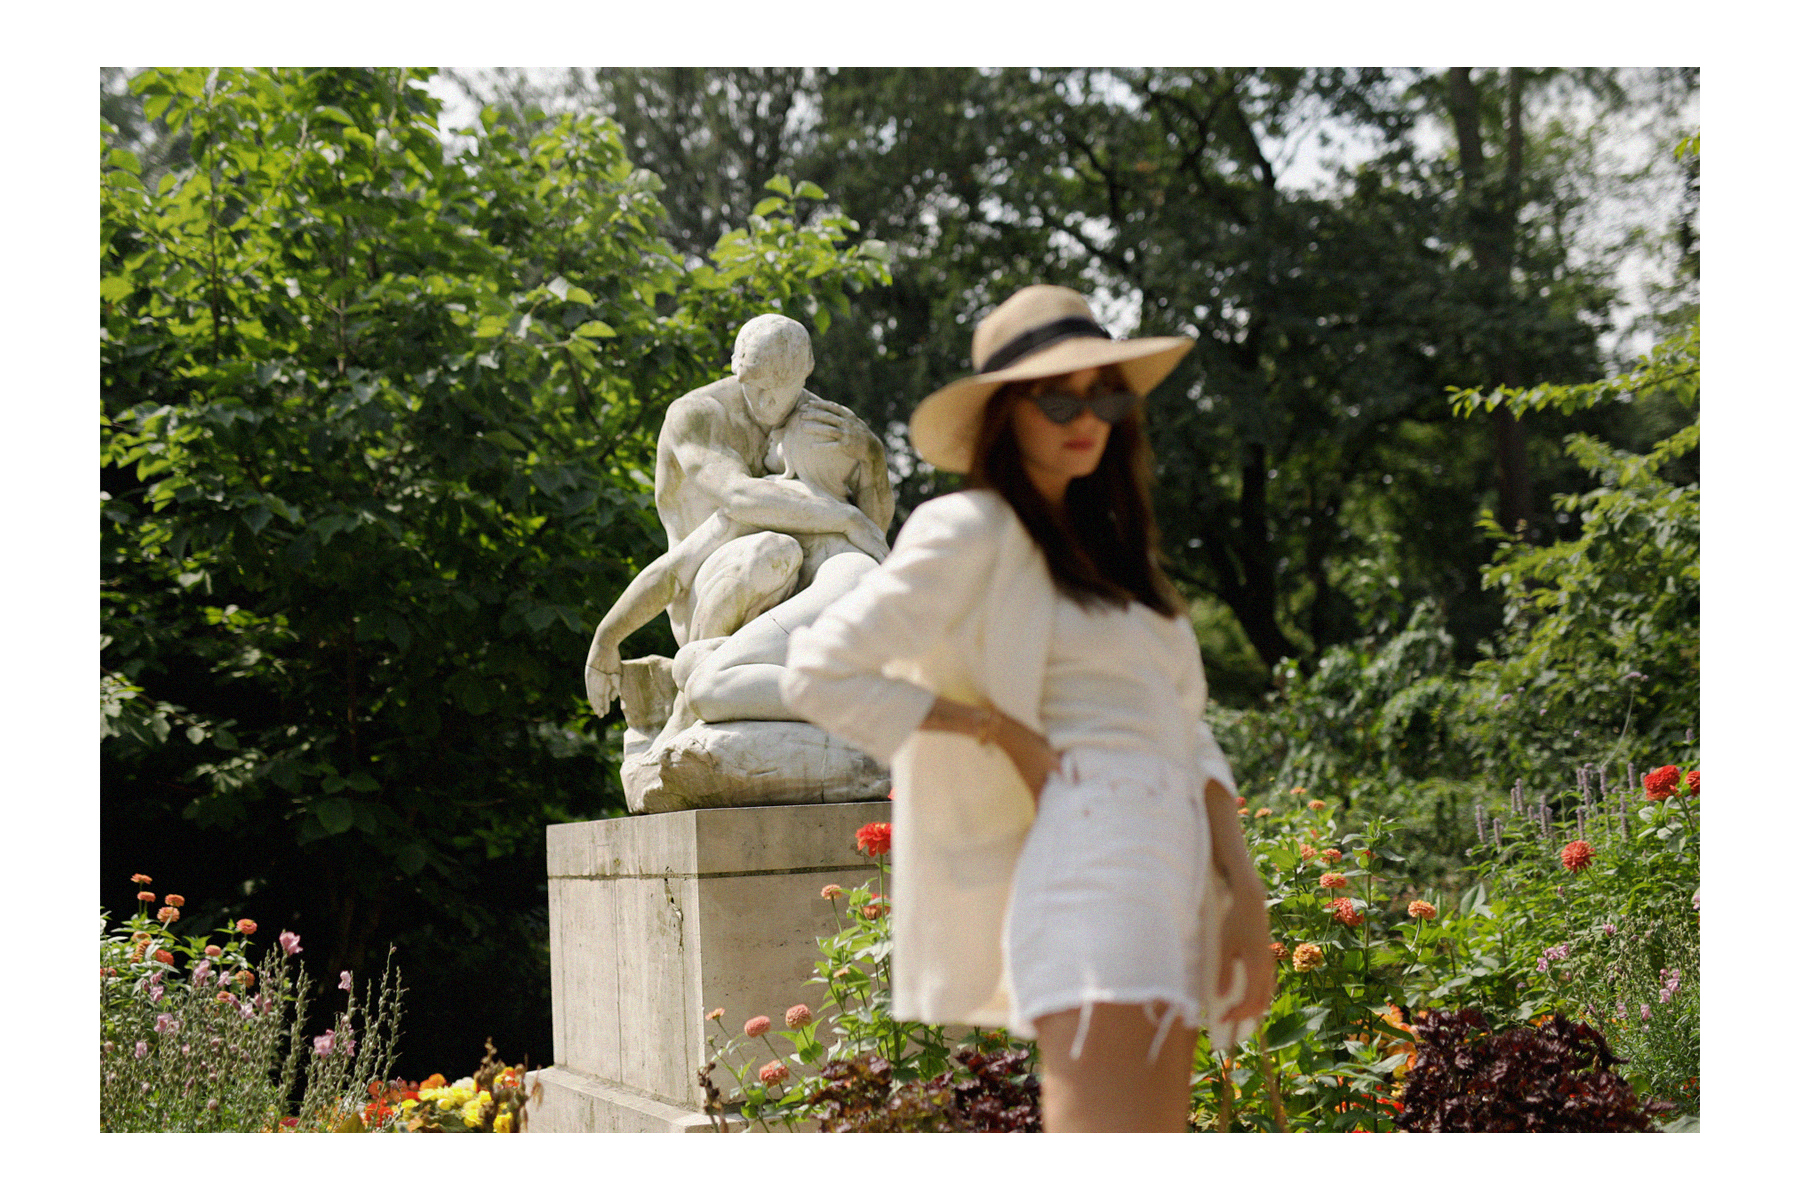 all white & other stories shorts blazer straw hat summer bag rouje hermes oran sandals statue marble dusseldorf düsseldorf dus art artist artsy fashionblogger modeblog jane birkin jeanne damas outfit mode inspiration look seventies ricarda schernus 5